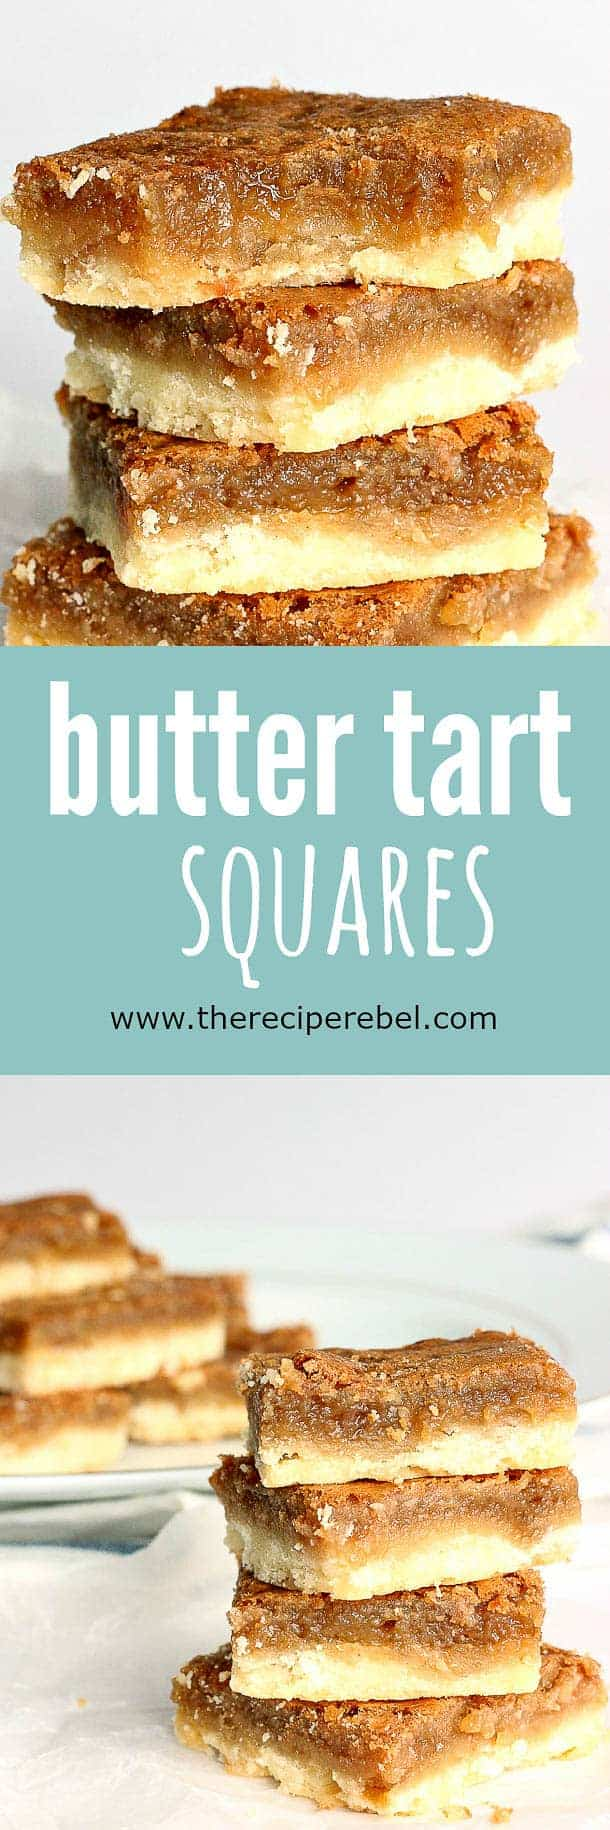 Ooey, gooey, sugary, buttery filling on top of a buttery shortbread crust -- so easy and SO good! The shortcut to good butter tarts.